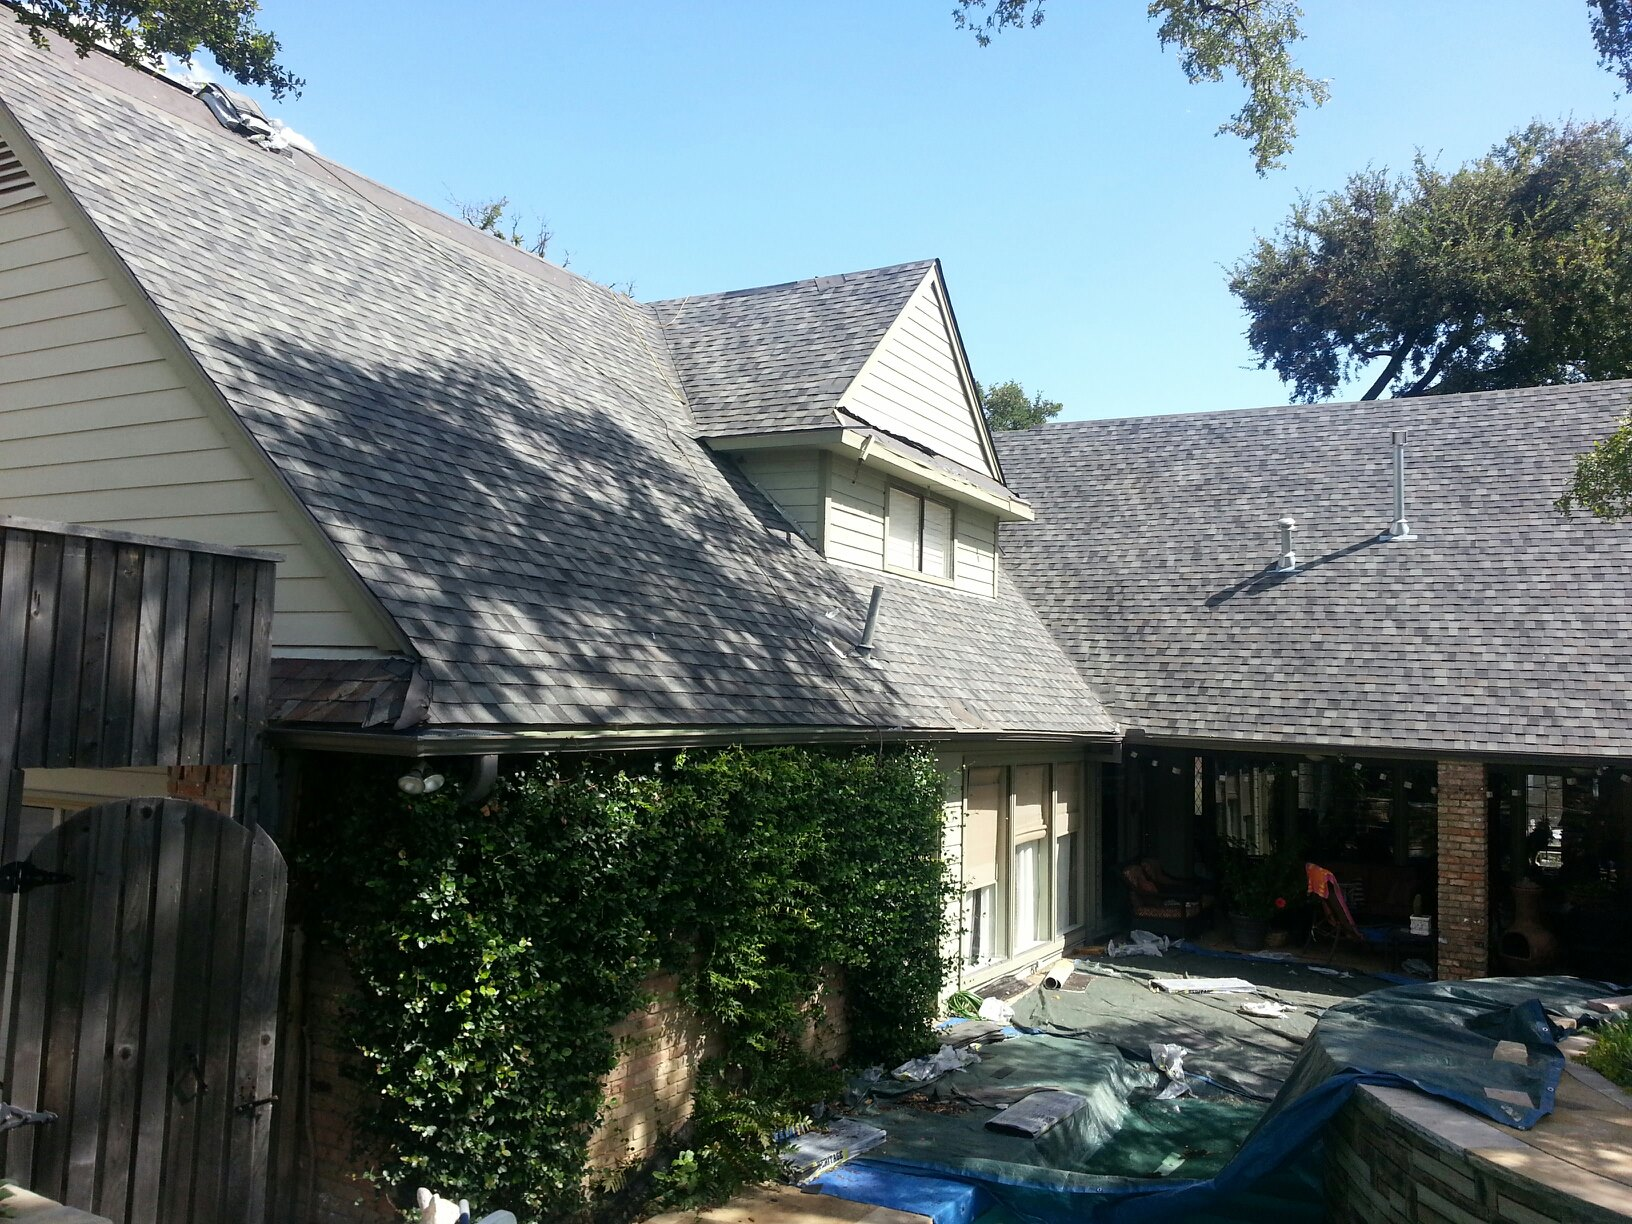 RESIDENTIAL ROOFING - We offer fast, reliable and affordable residential roofing services. Call to schedule an estimate visit.GET A QUOTE